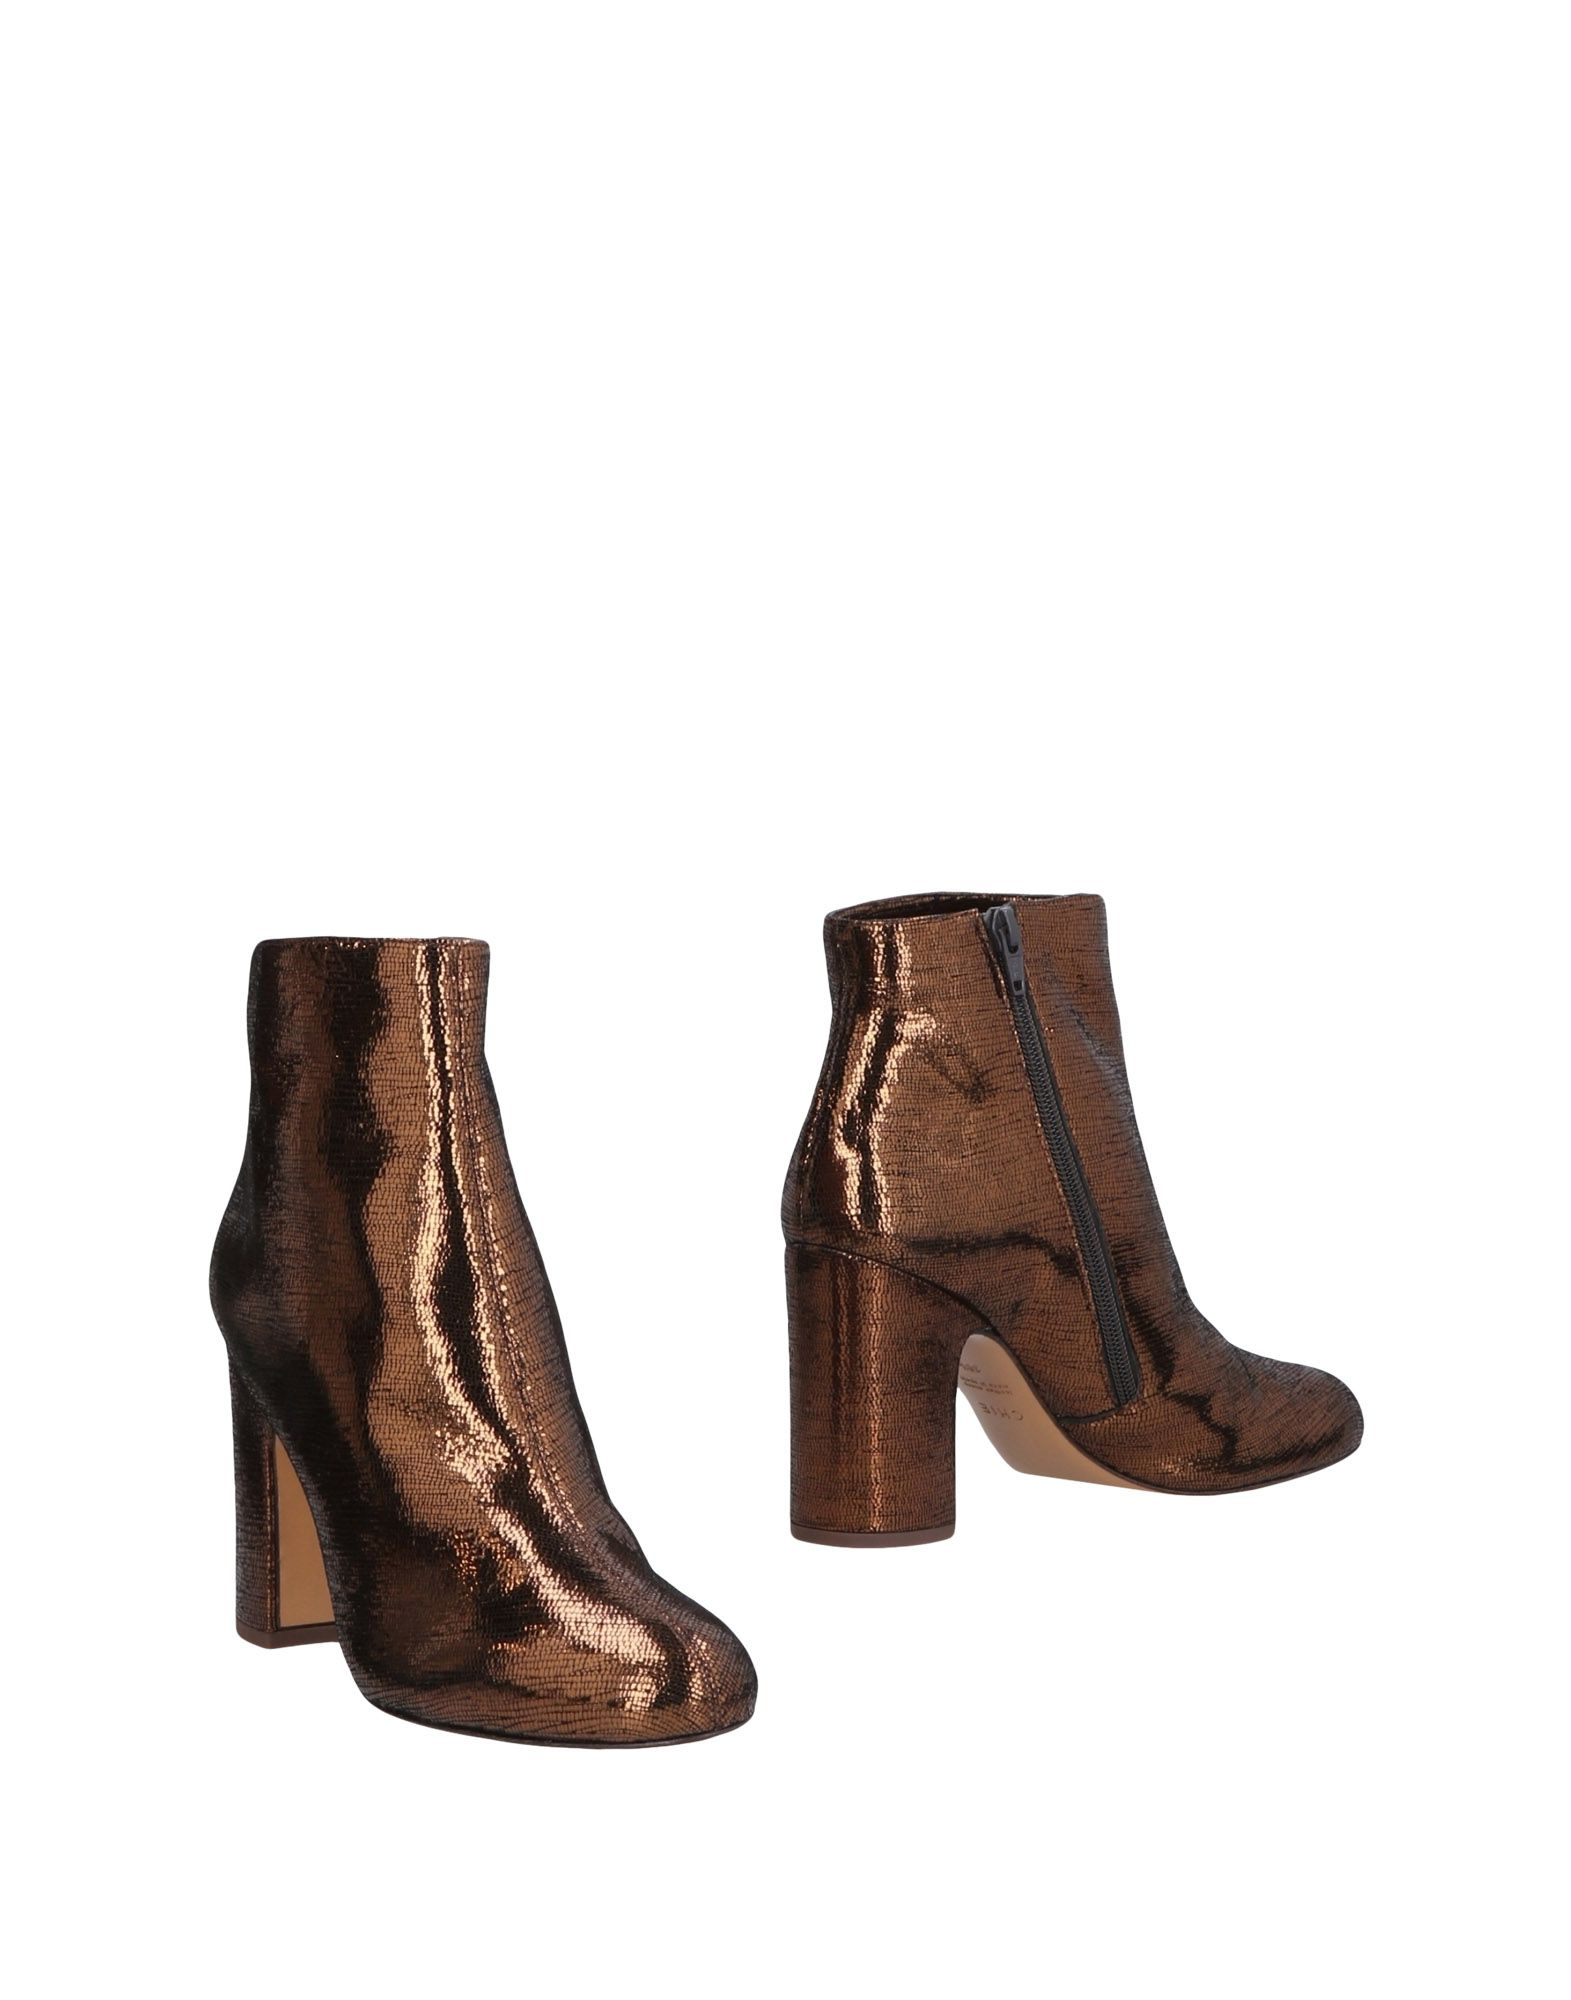 Chie By Chie Women Mihara Ankle Boot - Women Chie Chie By Chie Mihara Ankle Boots online on  Australia - 11357719XR b2dff8